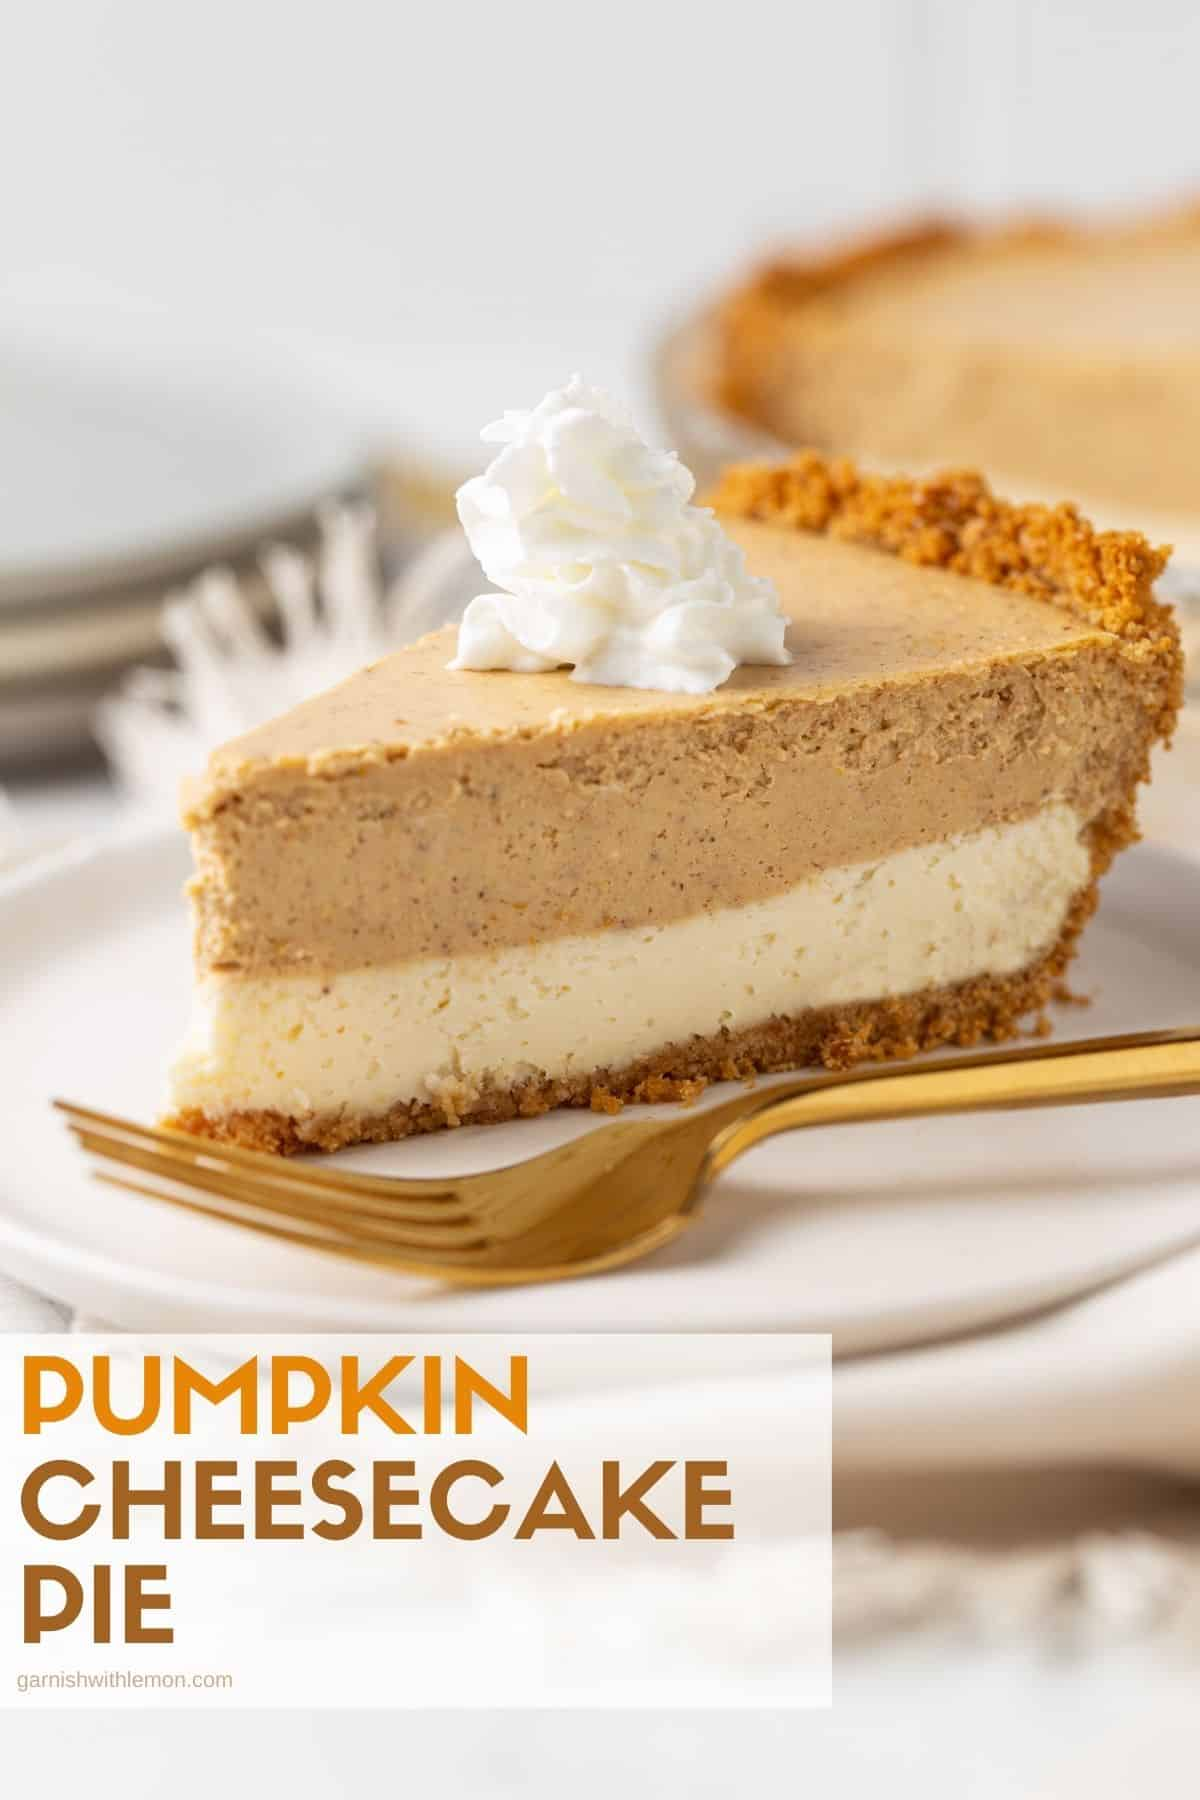 A piece of cake and whipped cream on a plate, with Cheesecake and Pumpkin.